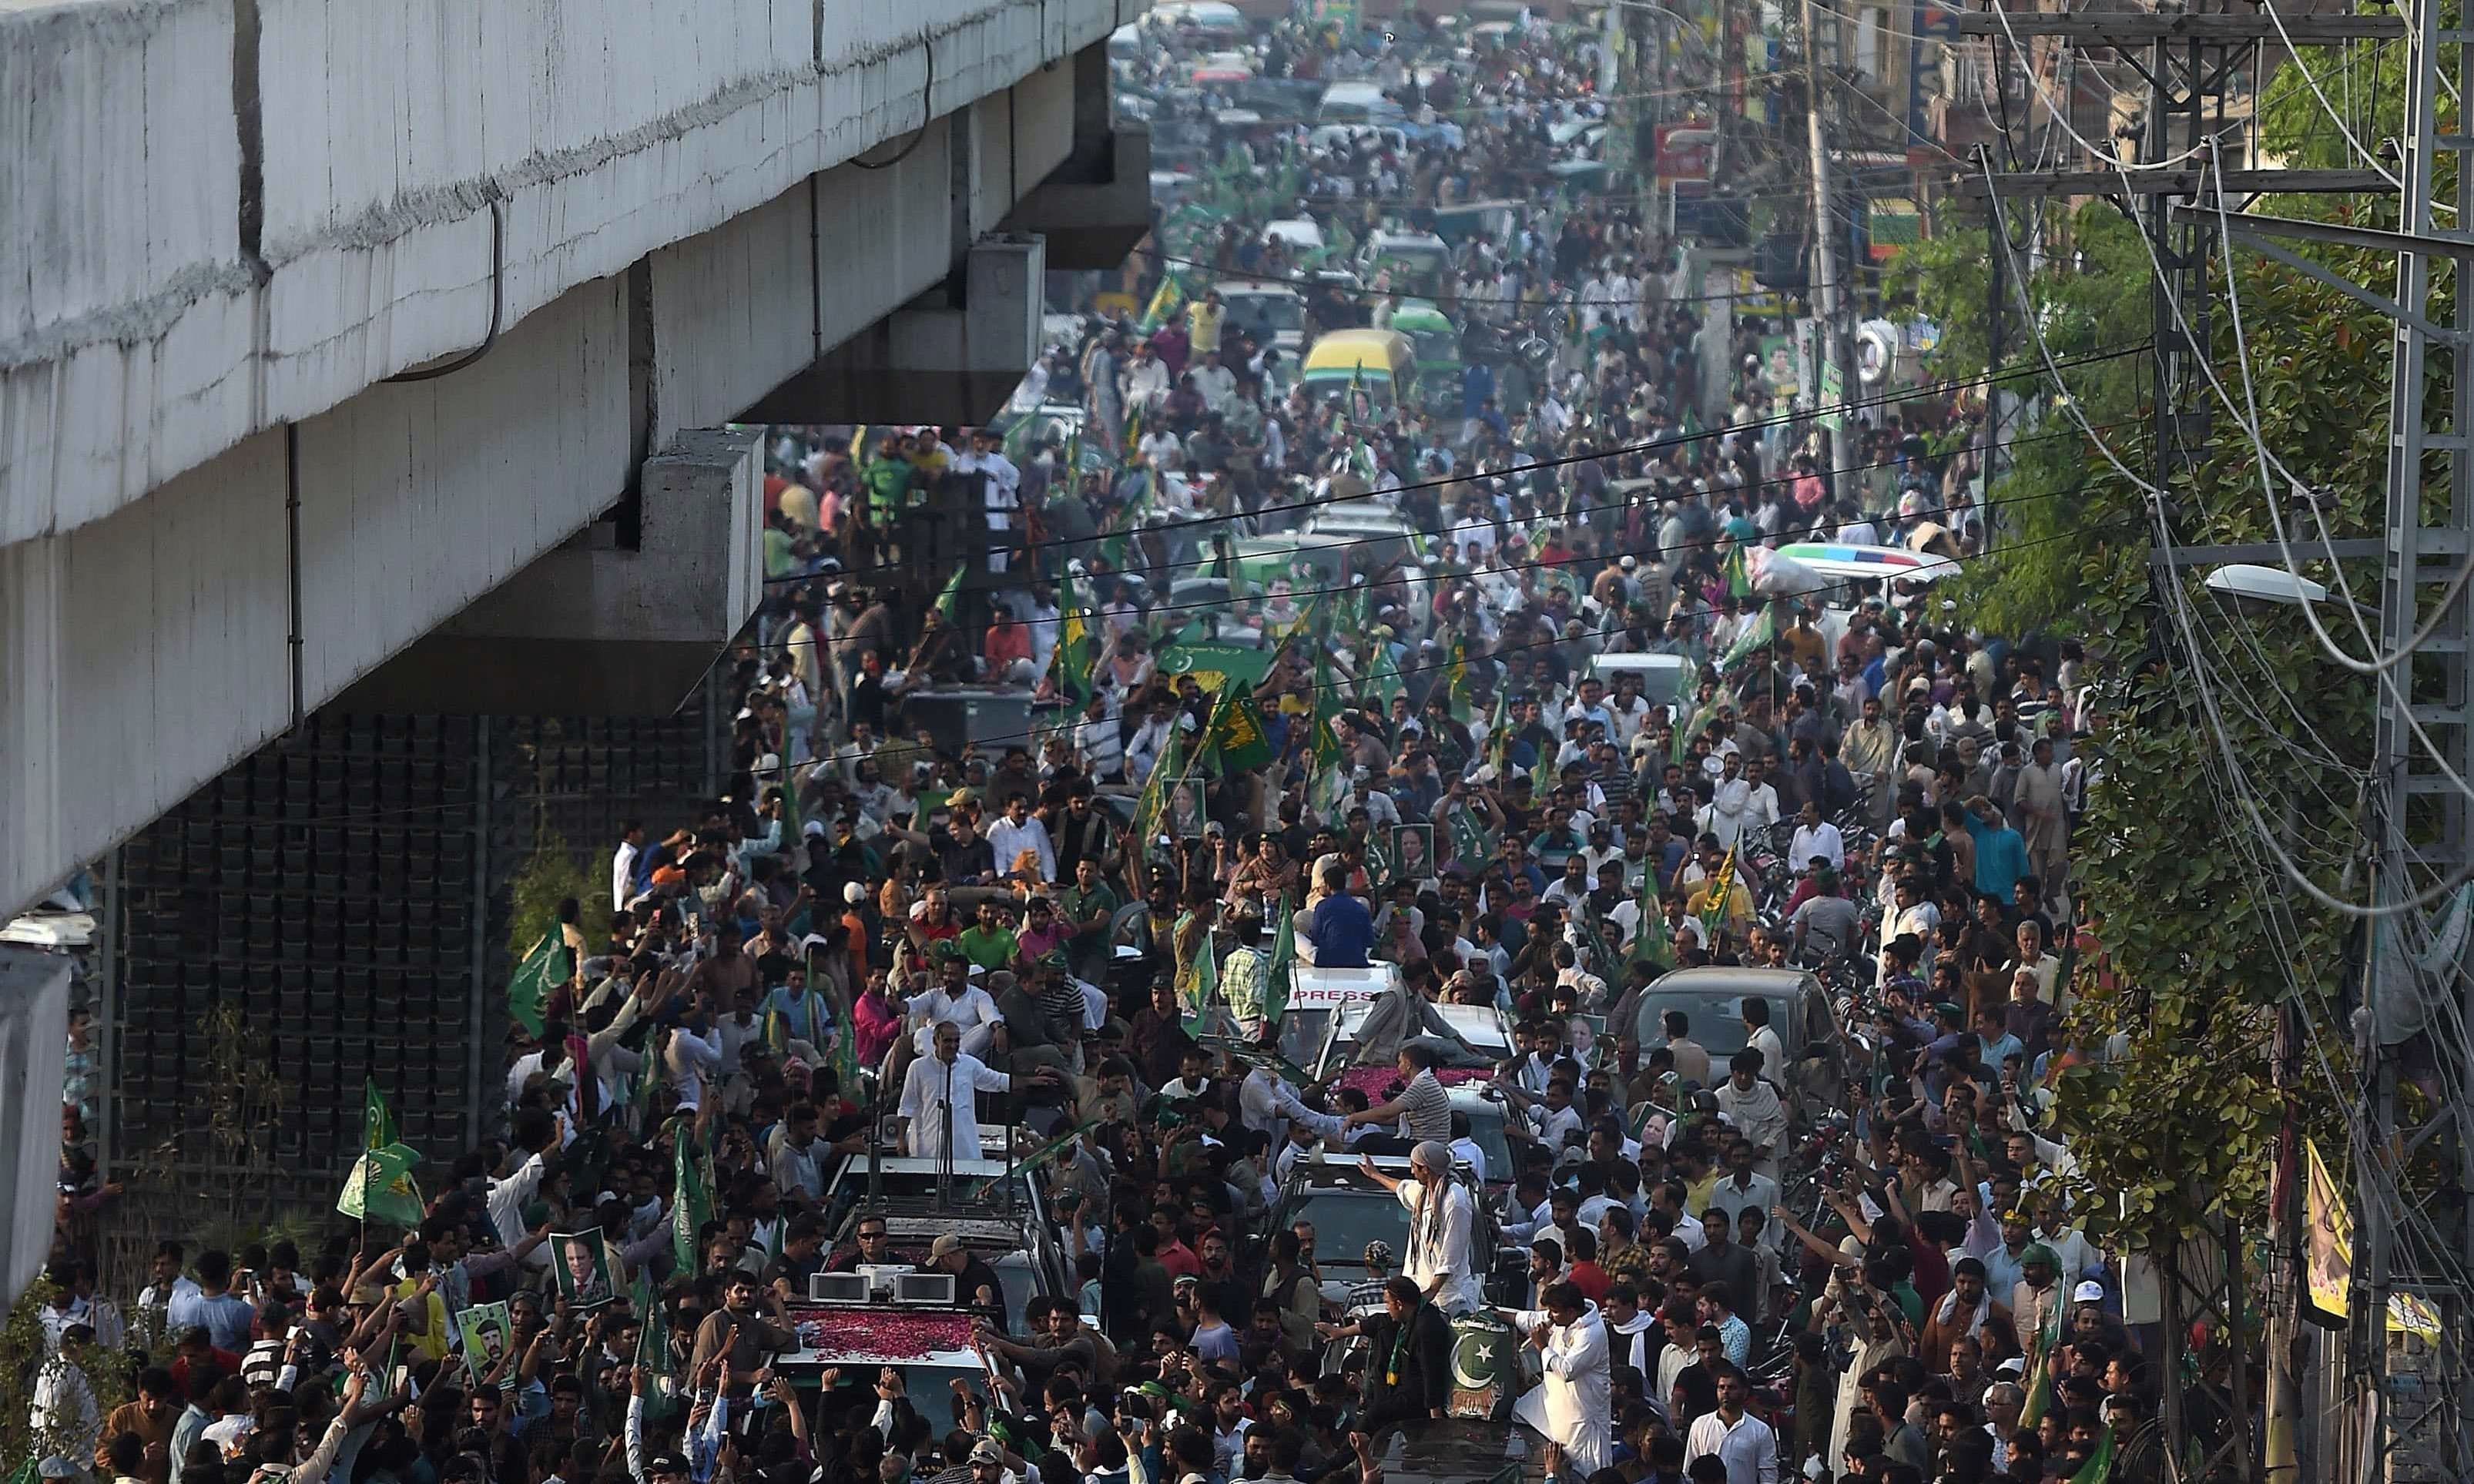 PML-N supporters take part in a march towards the airport ahead of the arrival of Nawaz Sharif in Lahore. — AFP